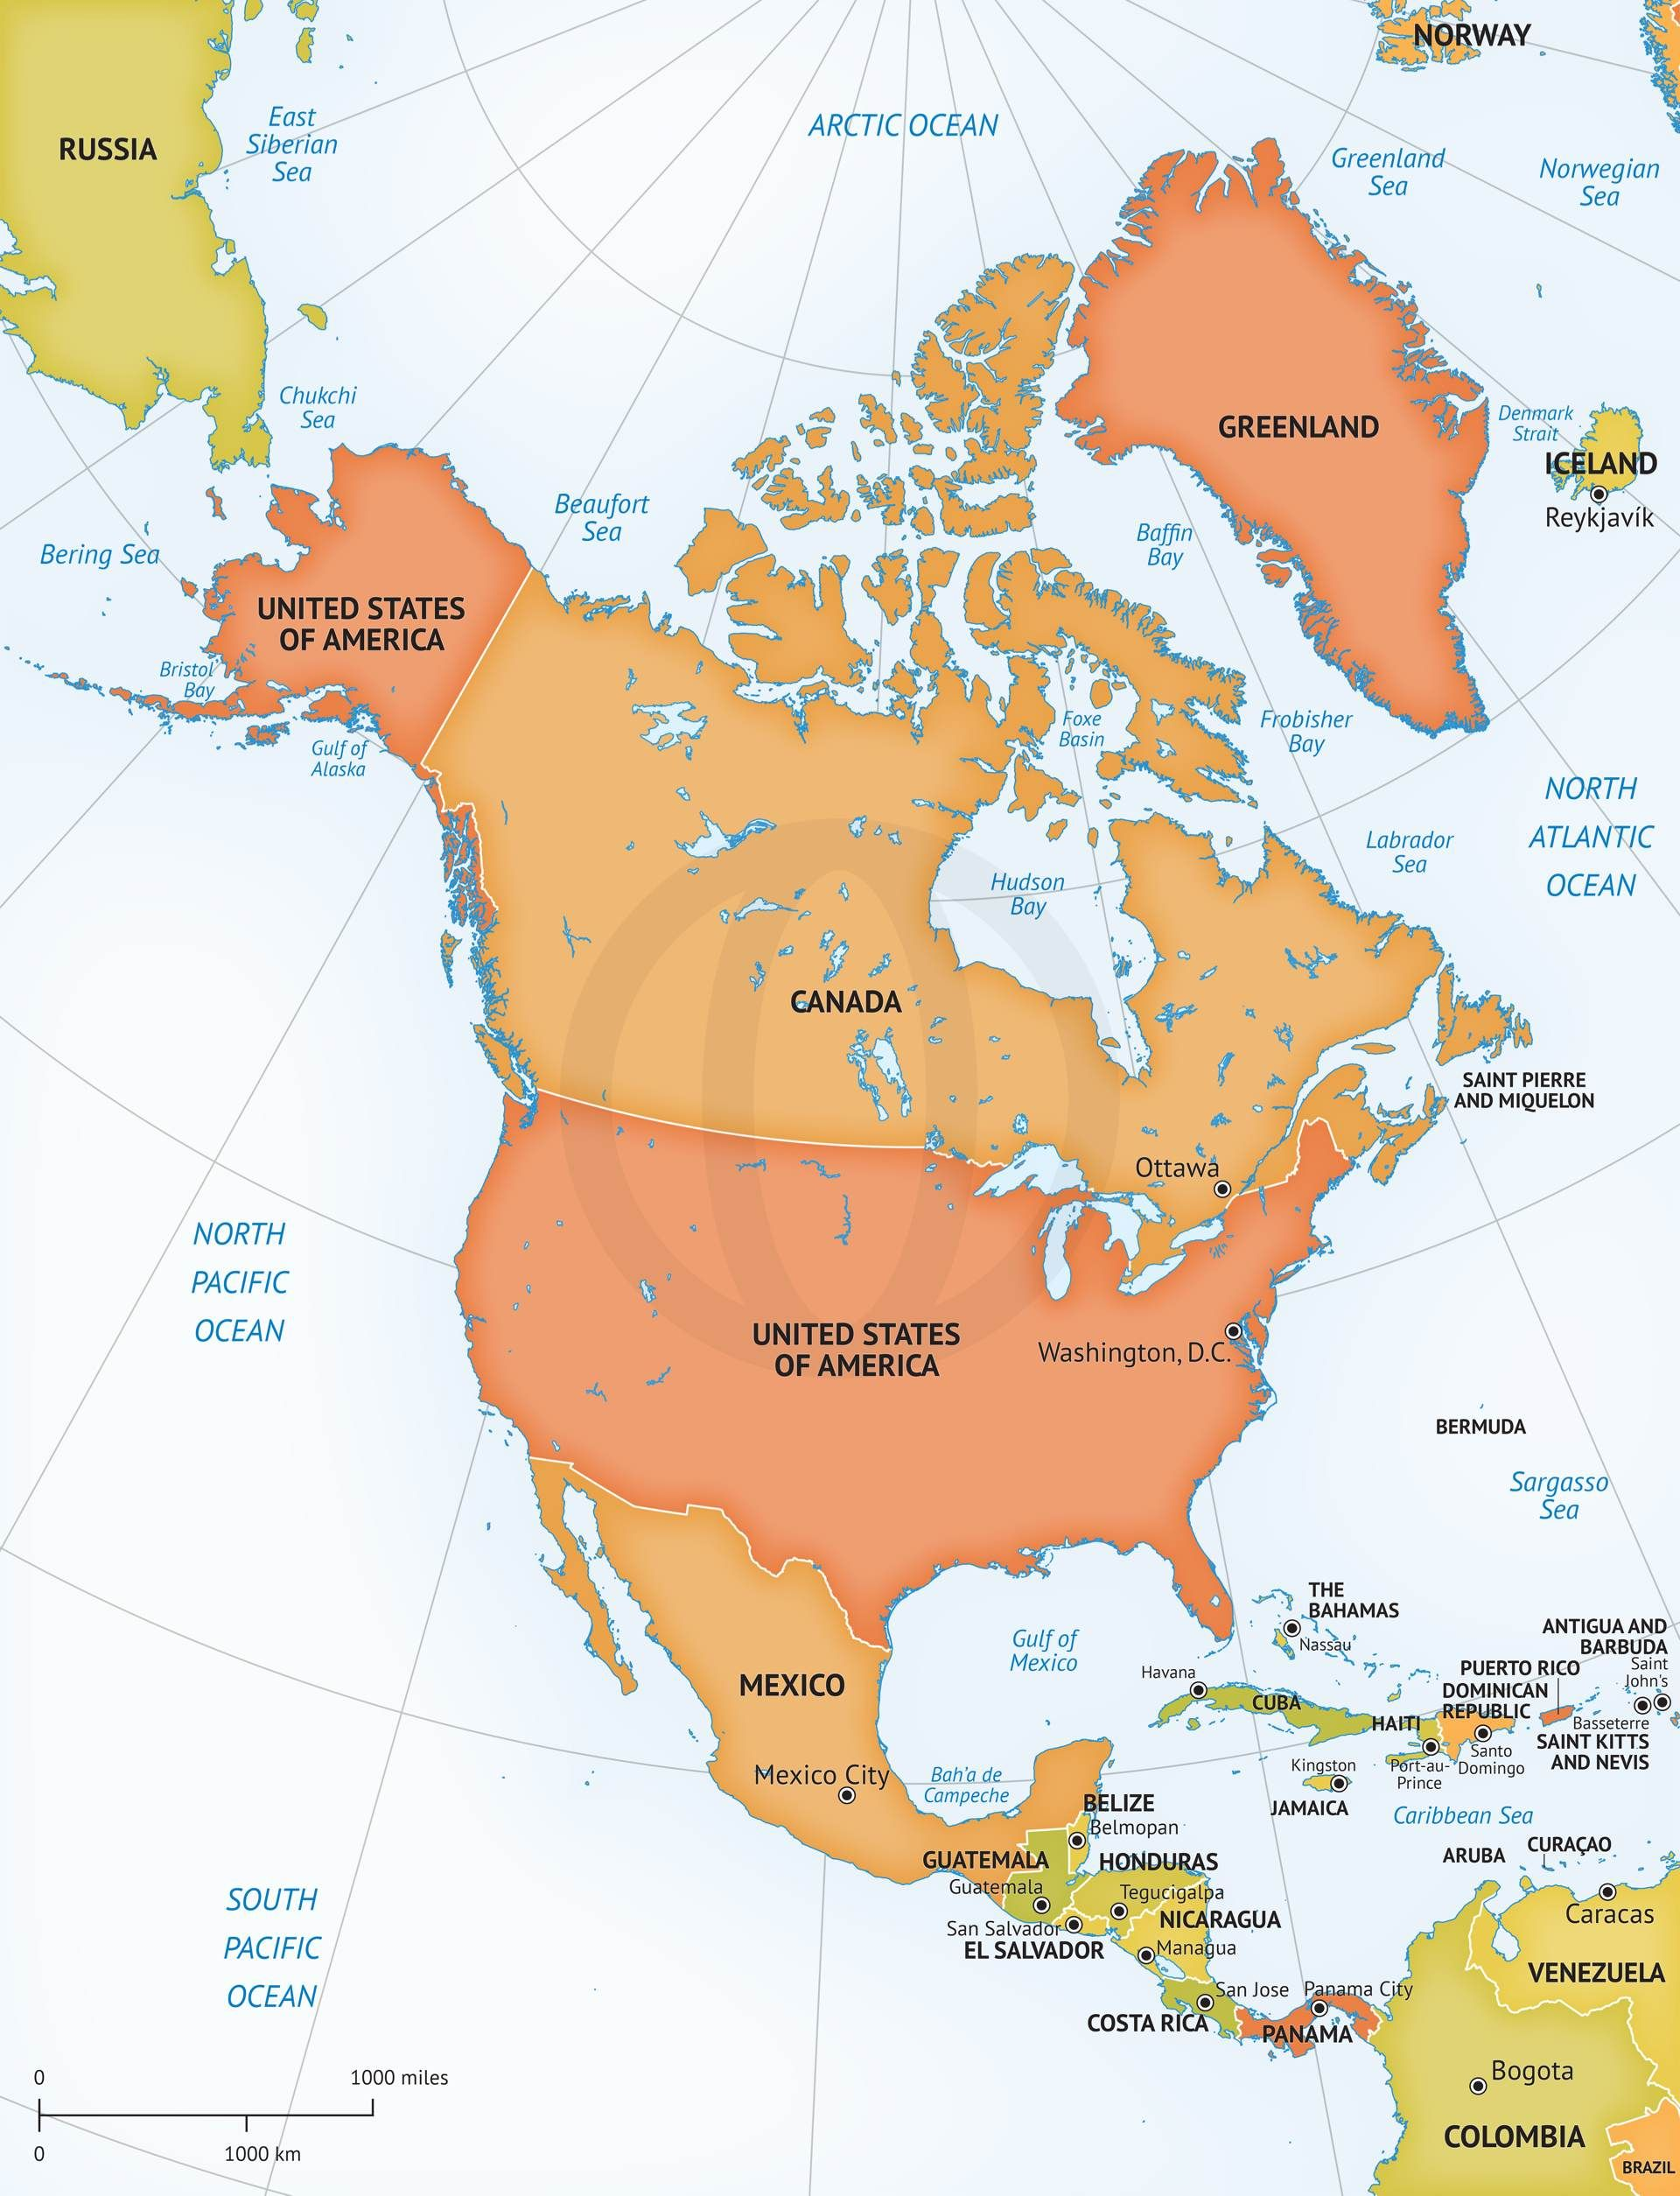 Vector map of north america continent north america continent political map royalty free high resolution jpeg and vector format layered editable ai eps and pdf gumiabroncs Gallery